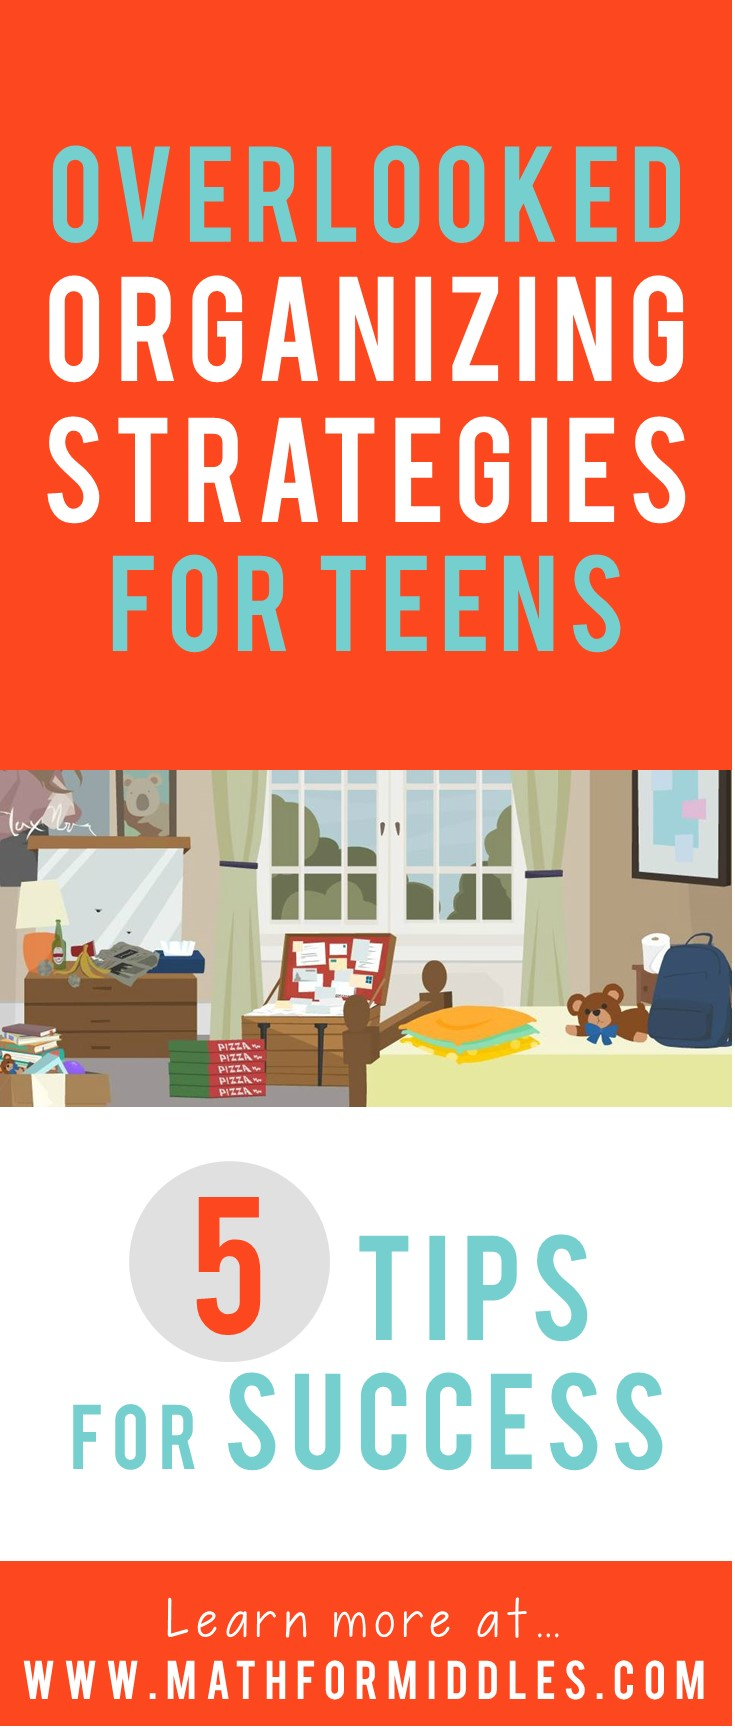 5 Overlooked Organizing Strategies for Teens [010]